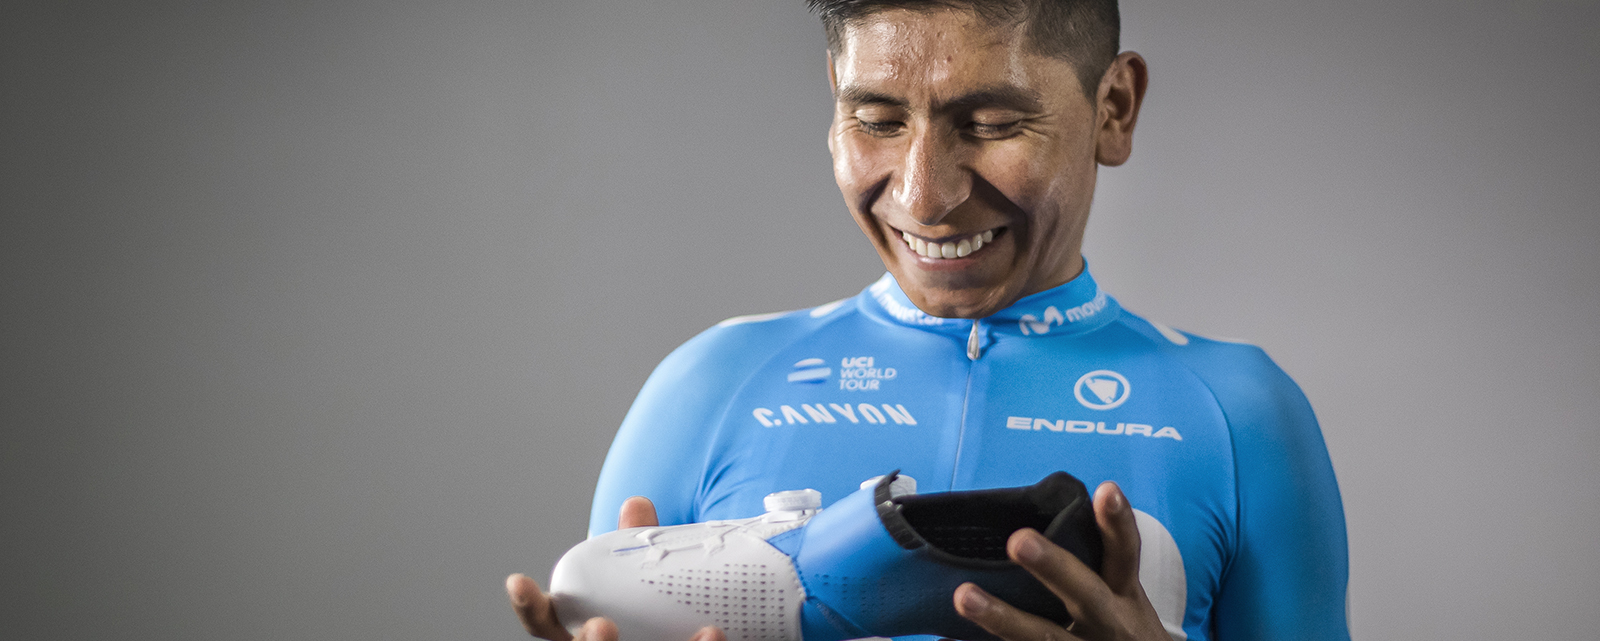 7 questions with Nairo Quintana